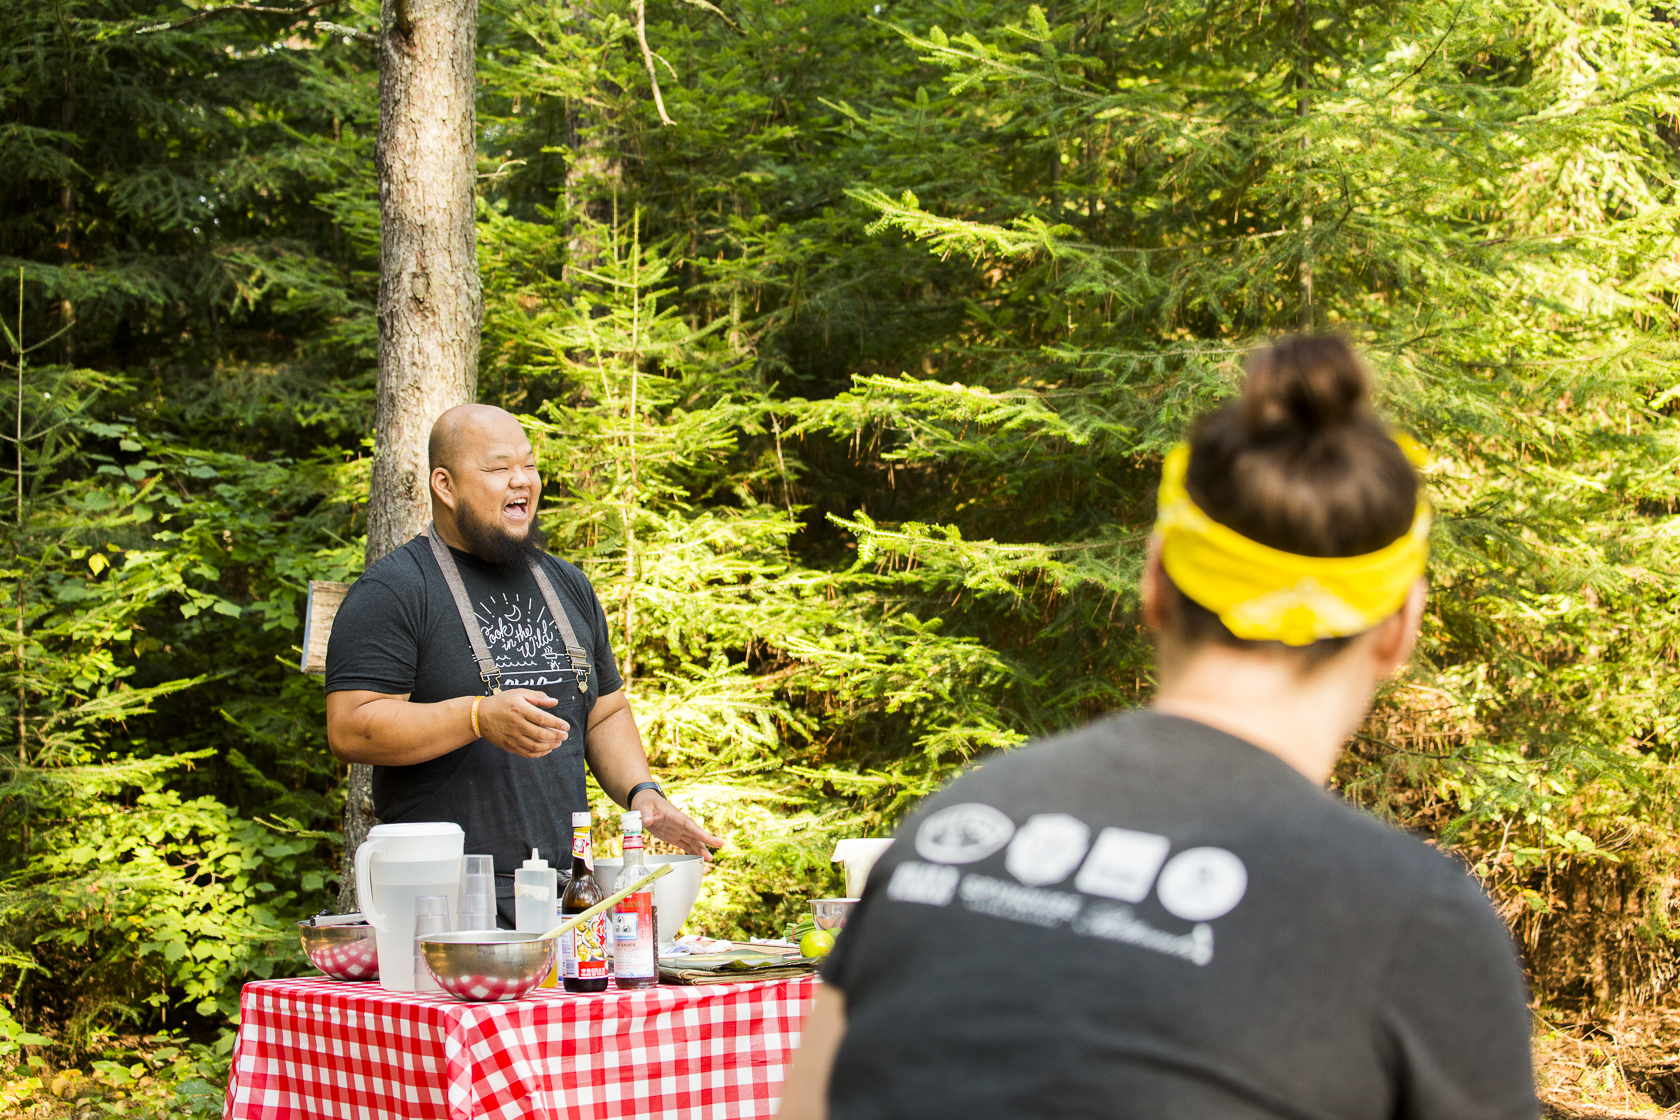 Hester_ChefCamp_2017_LowRes_437.jpg